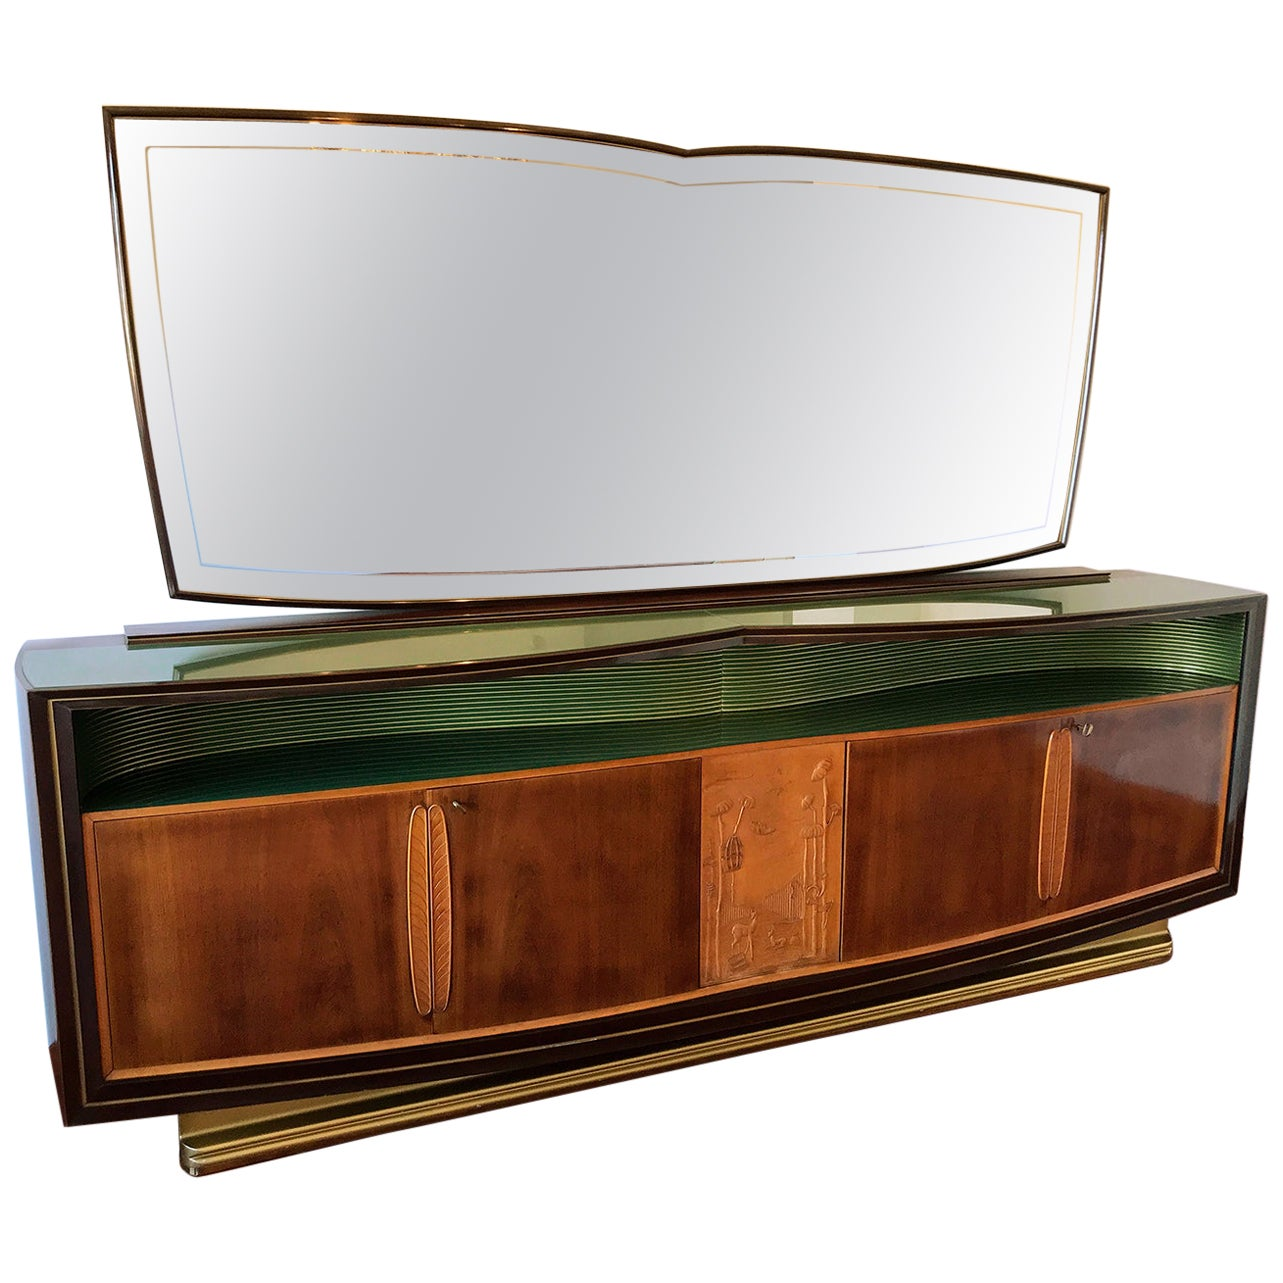 Italian Midcentury Walnut Long Sideboard with Mirror by Vittorio Dassi, 1950s